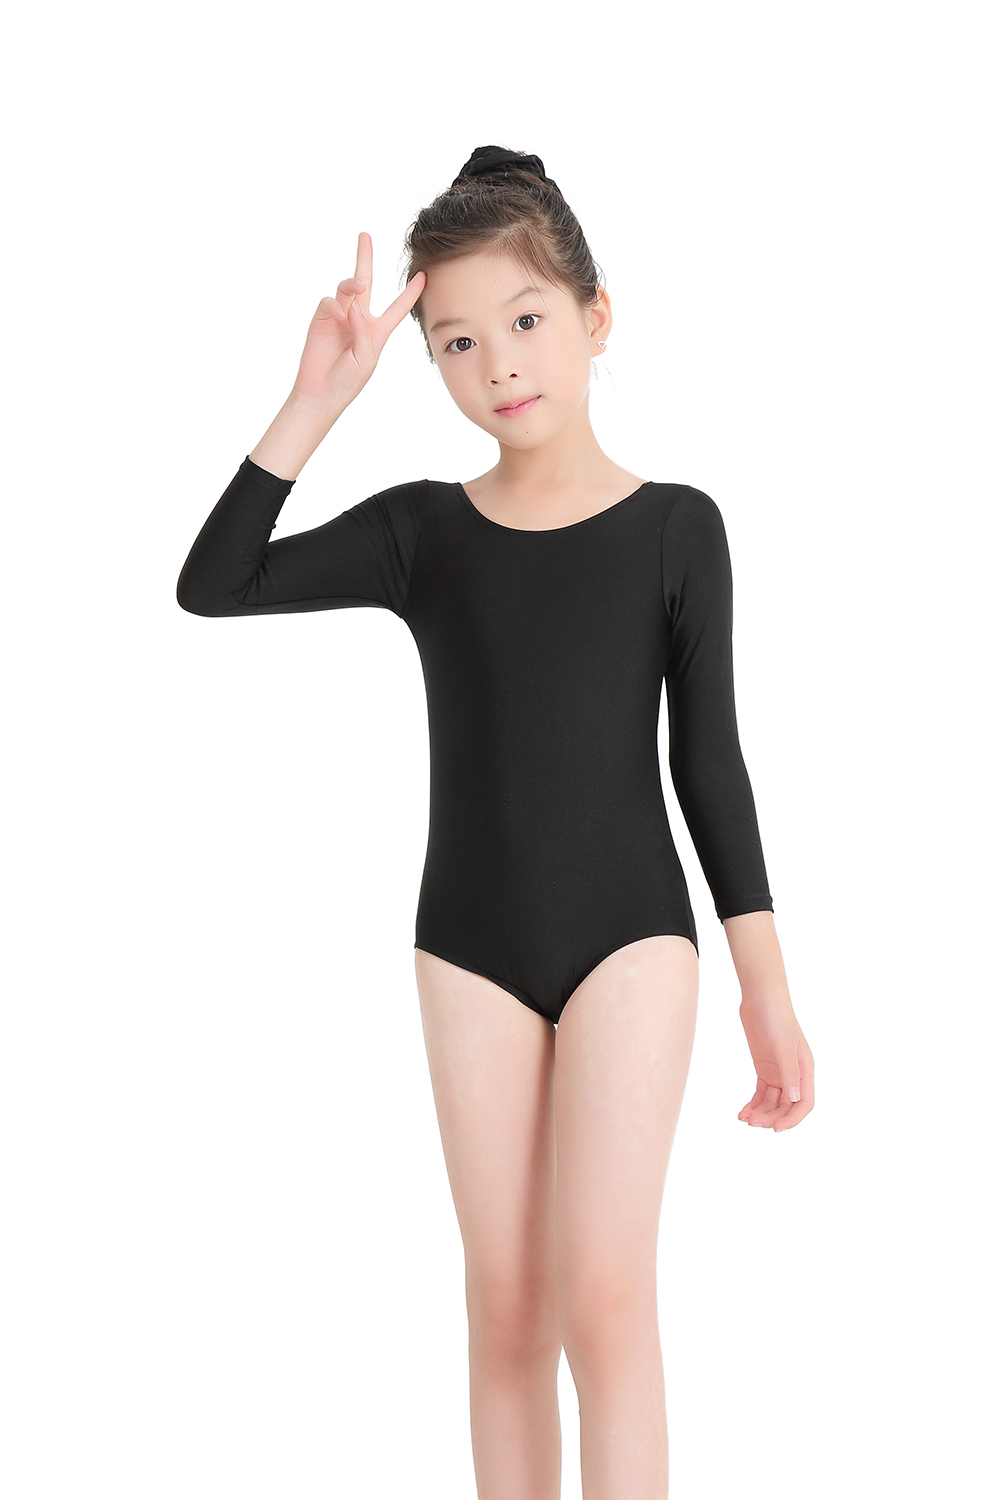 14a3bd8bd SPEERISE Leotard for Girls Toddler Long Sleeve Gymnastics Leotards ...